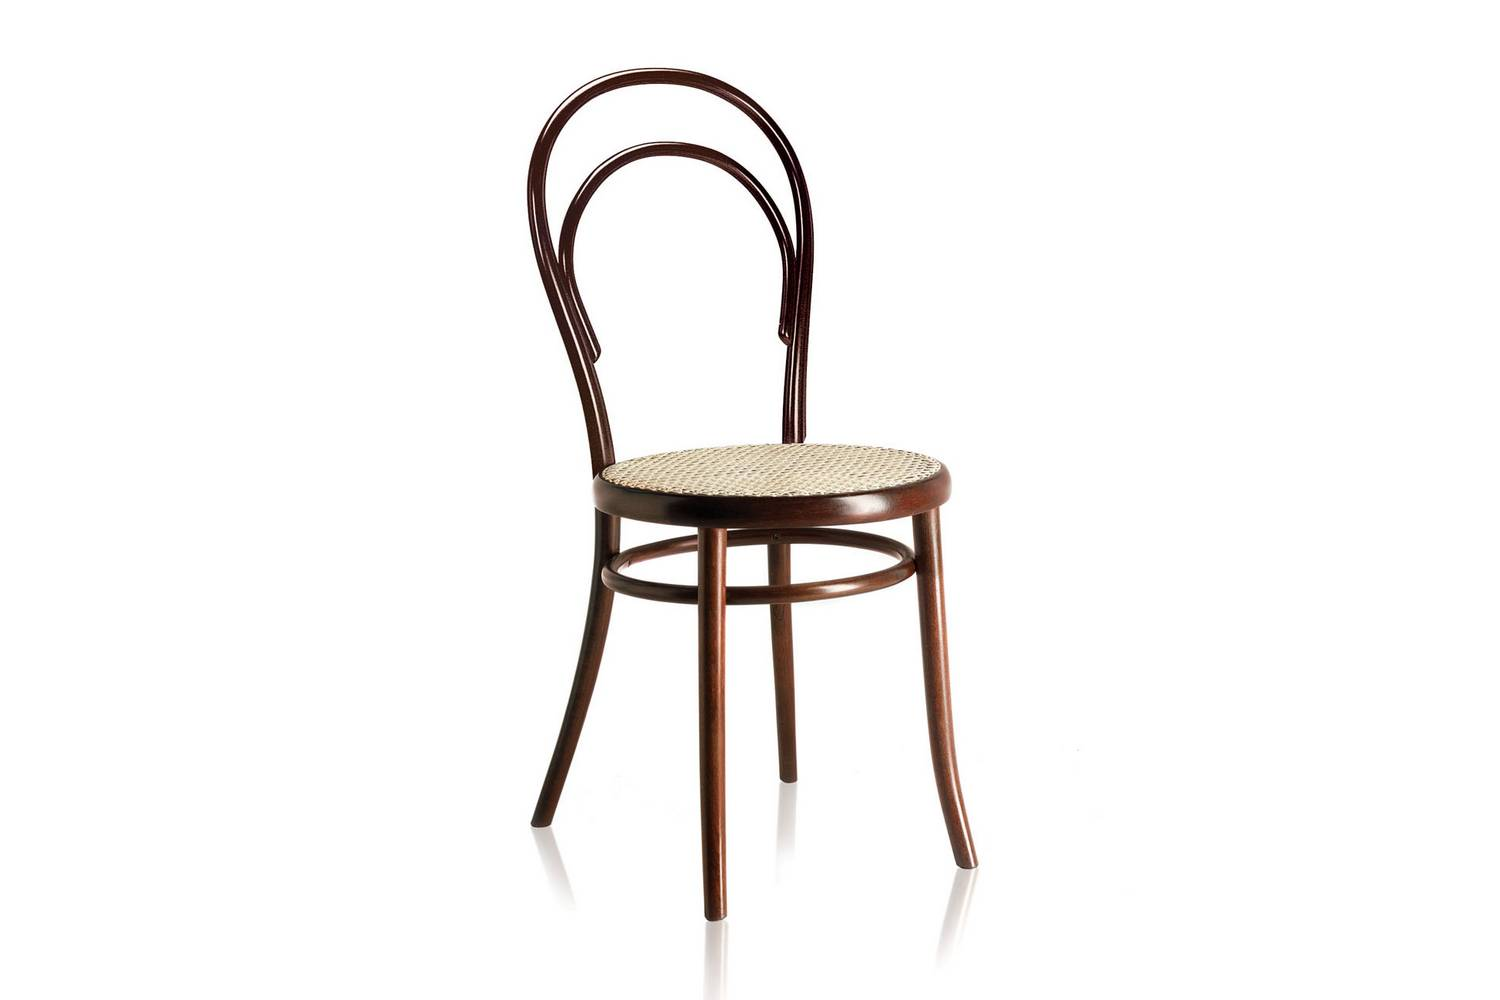 Thonet S32 N 14 Chair By Michael Thonet For Gebruder Thonet Vienna Gmbh